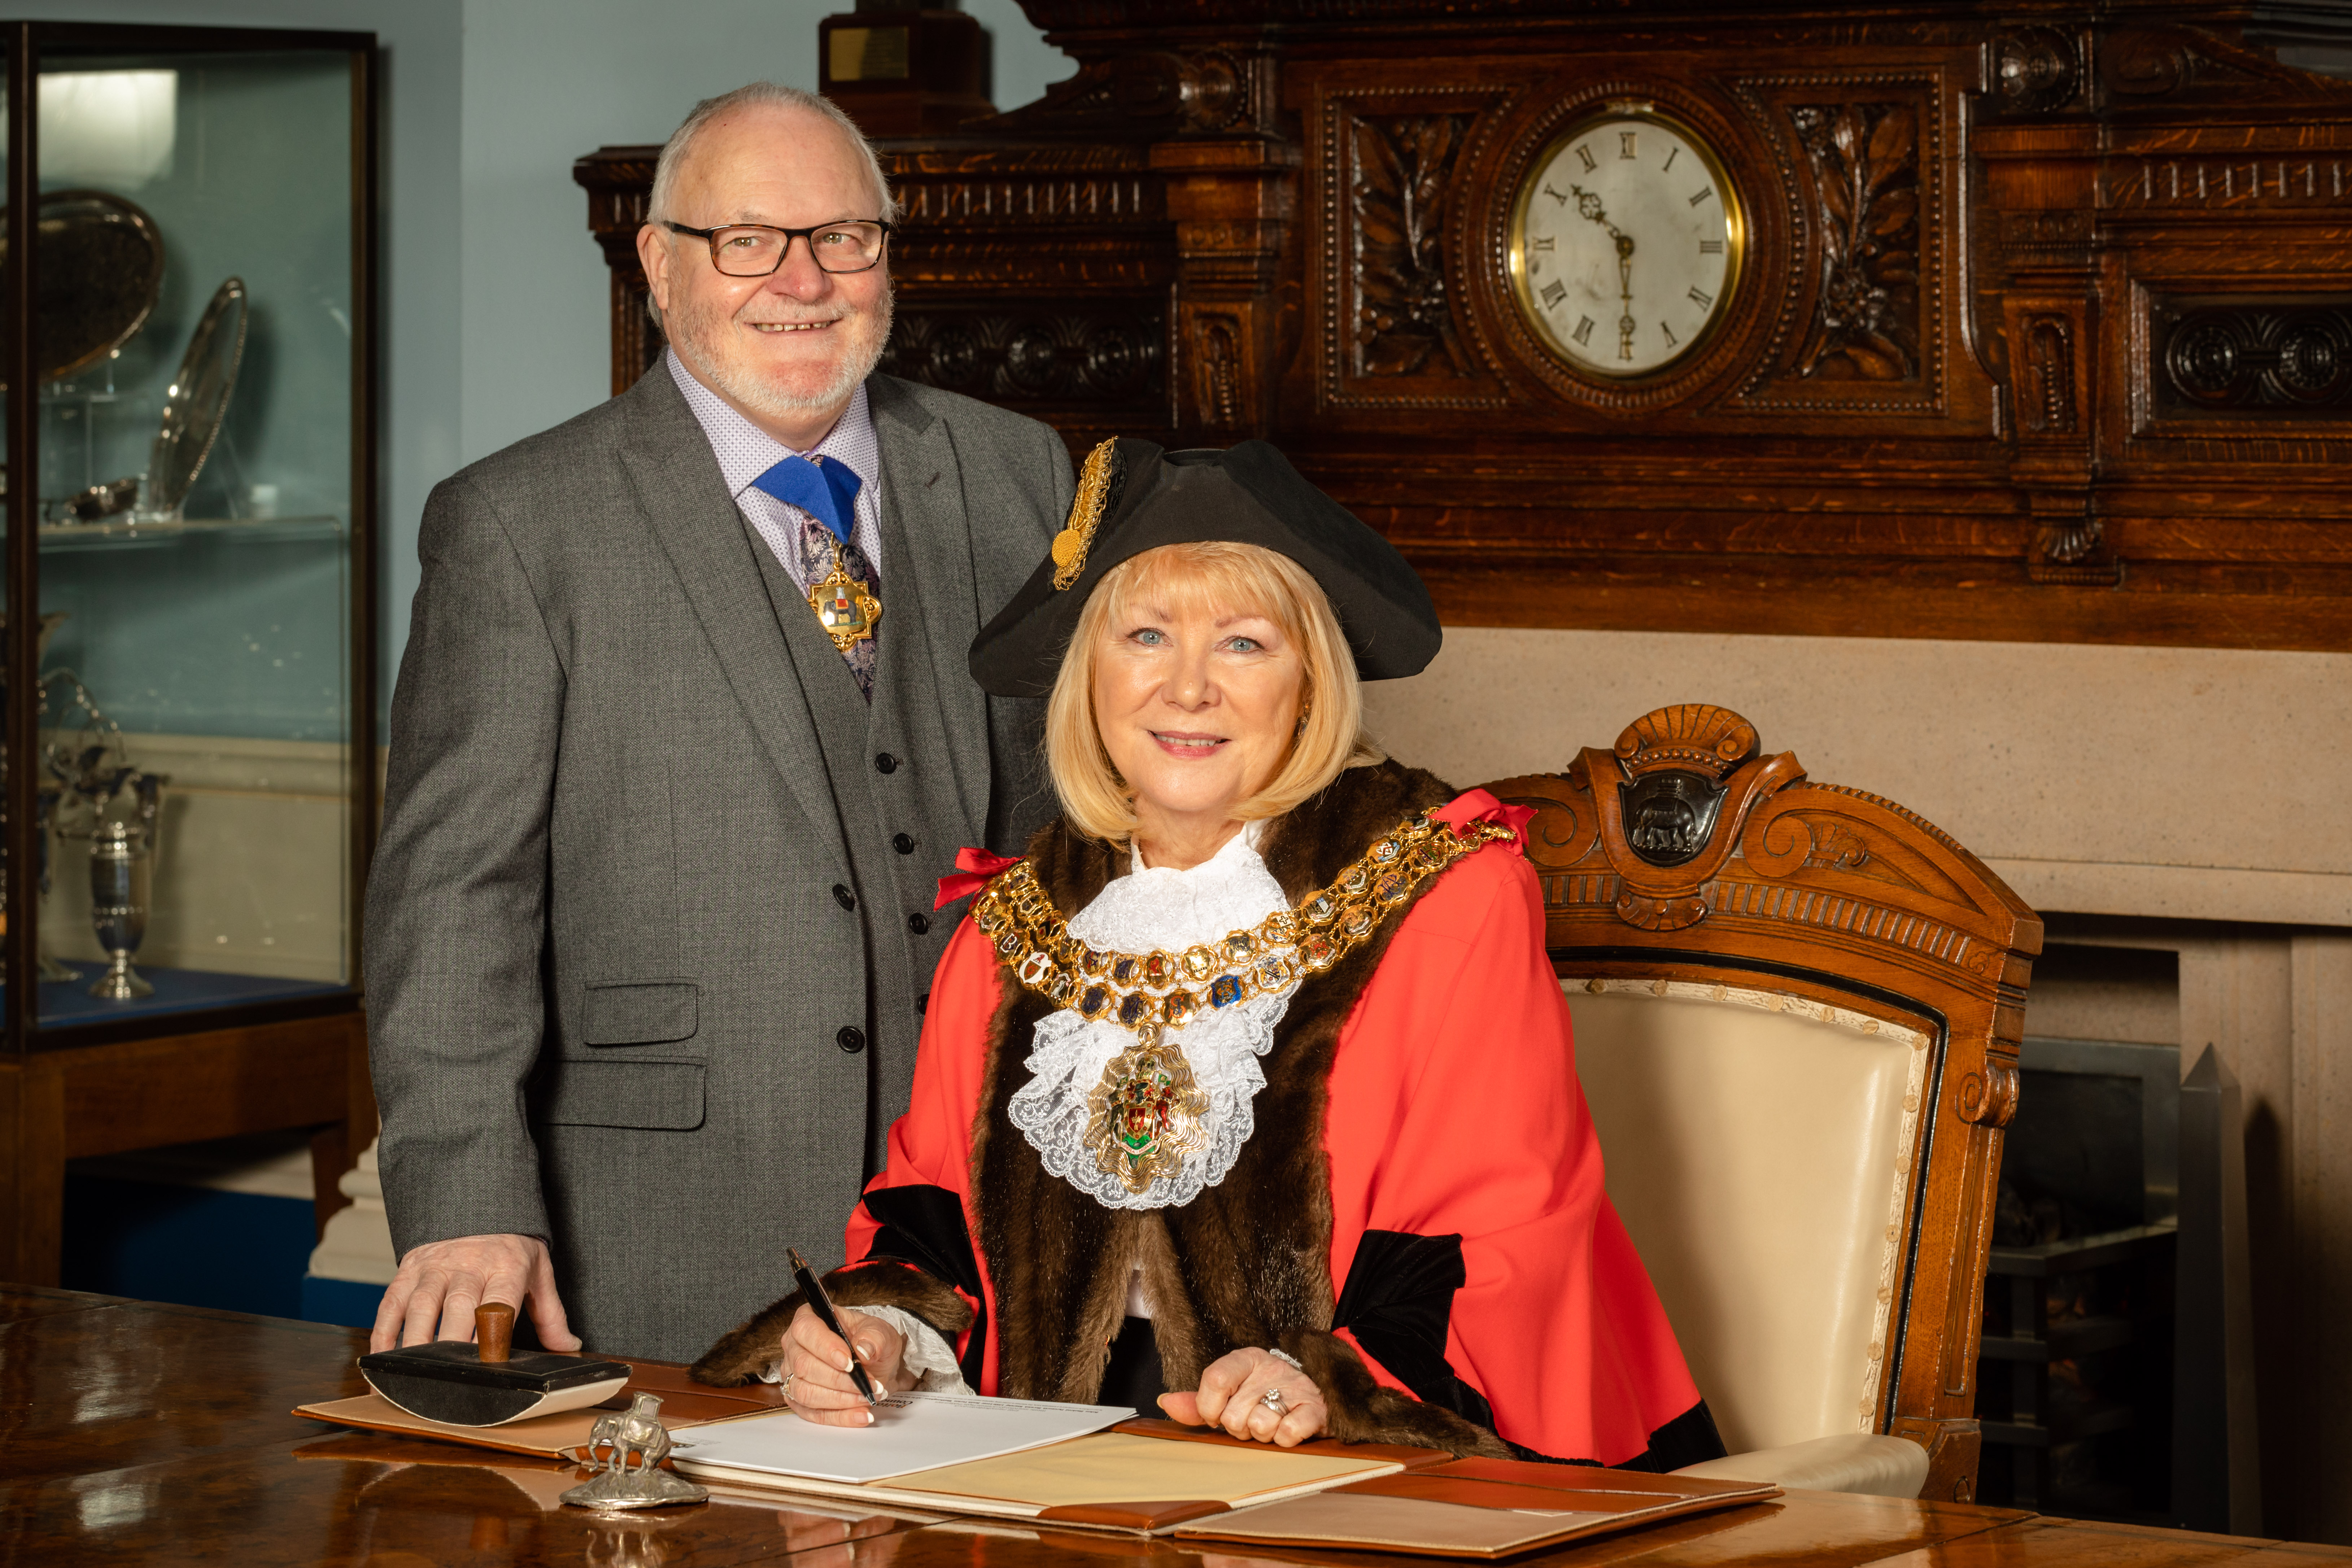 Cllr Mayor Hilary Fairclough